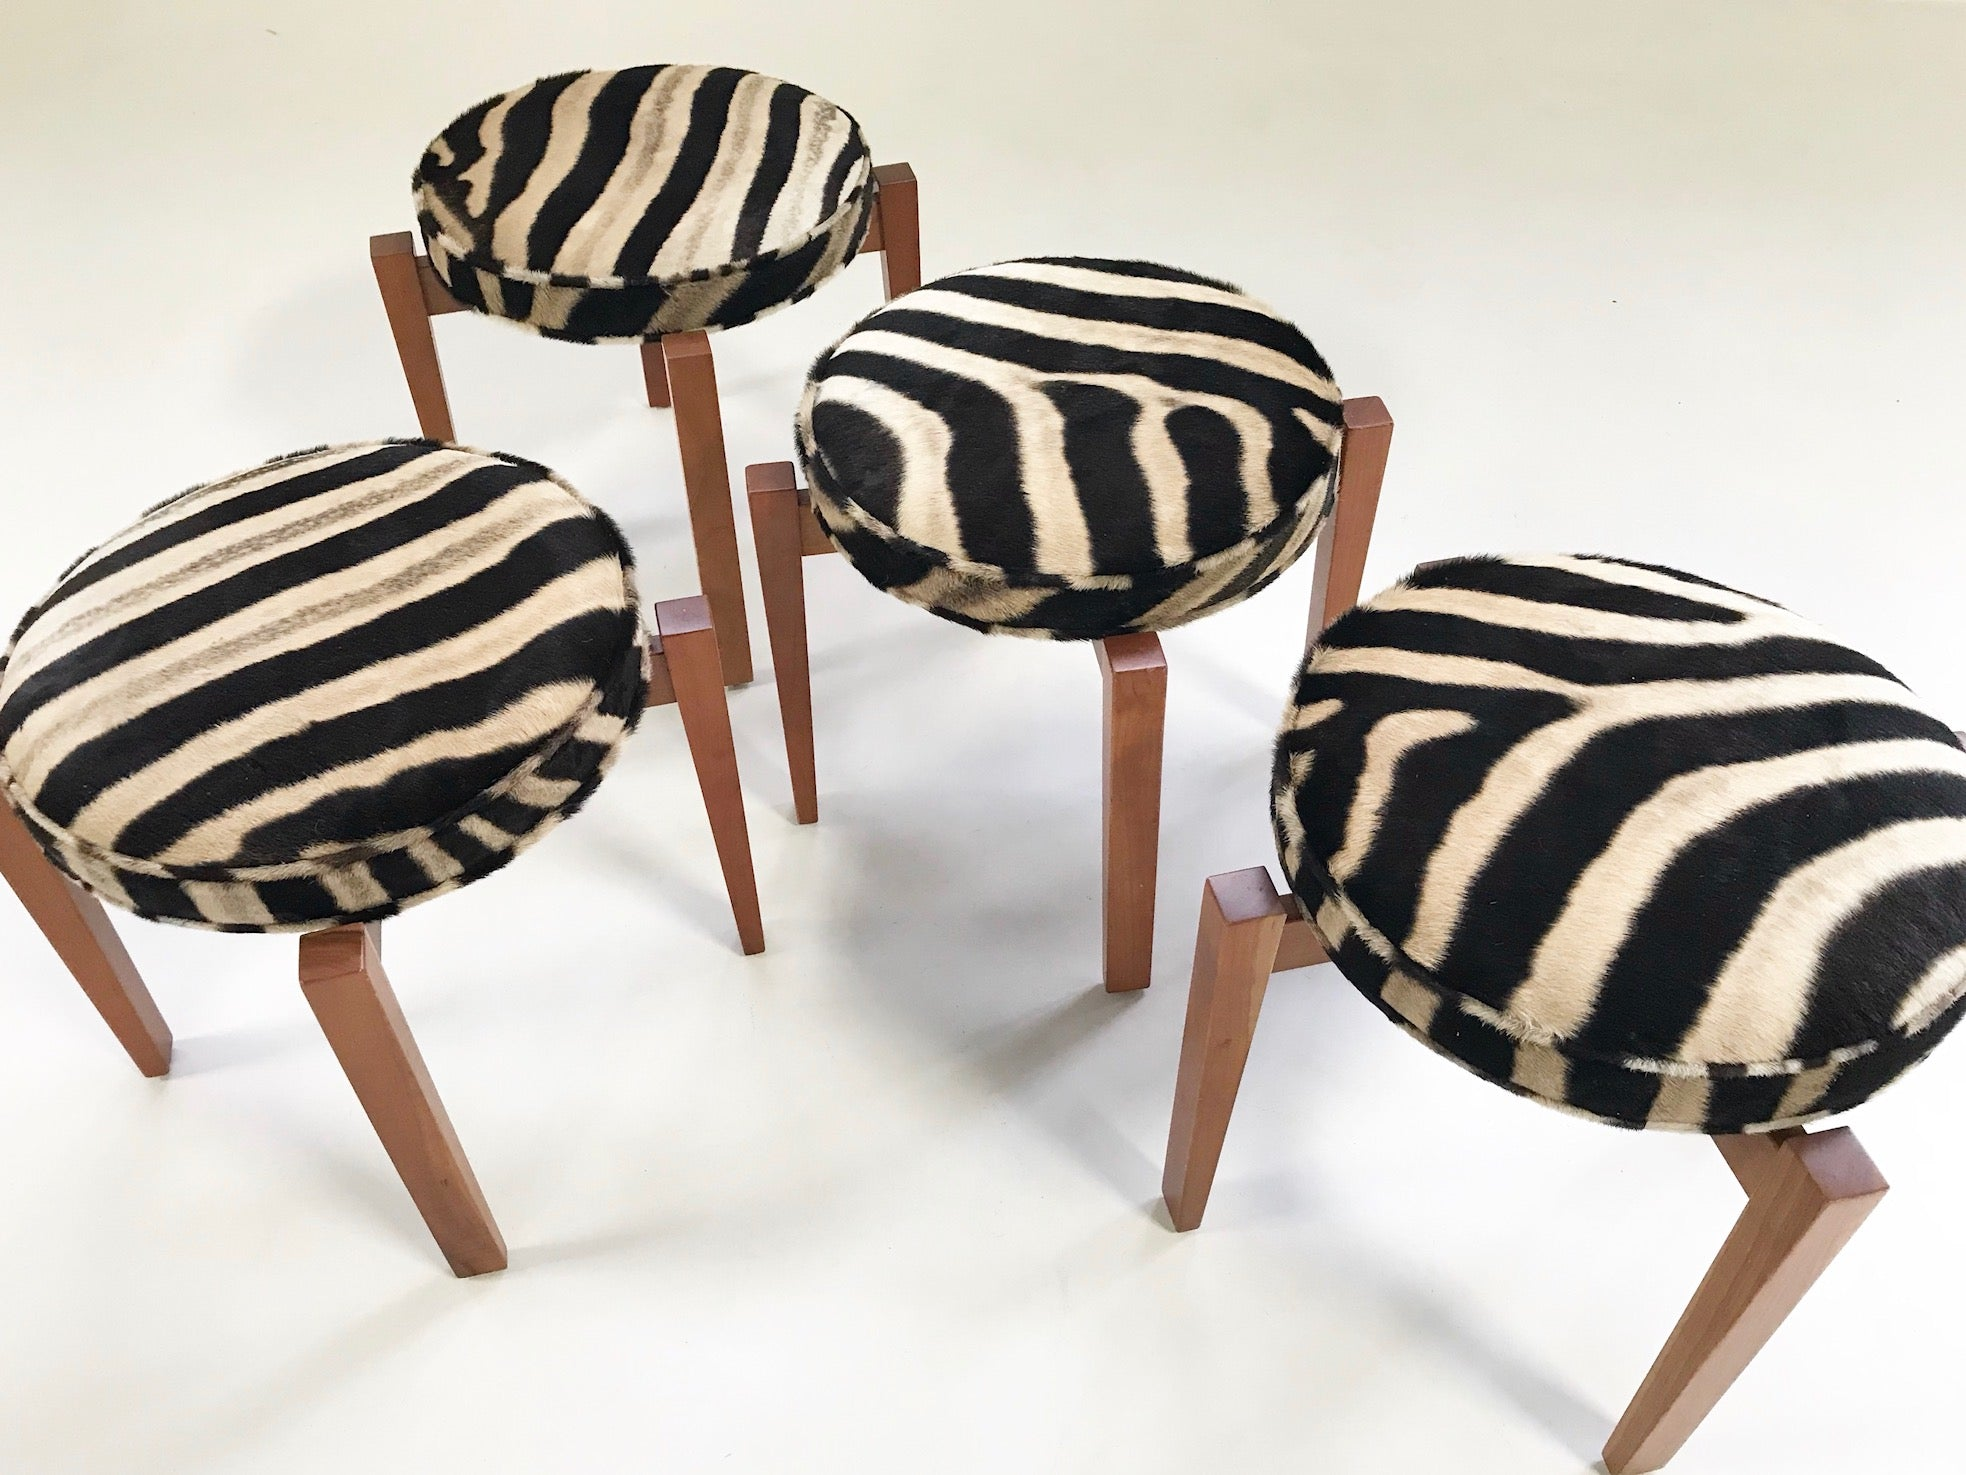 Stools in Zebra Hide, set of 4 - FORSYTH